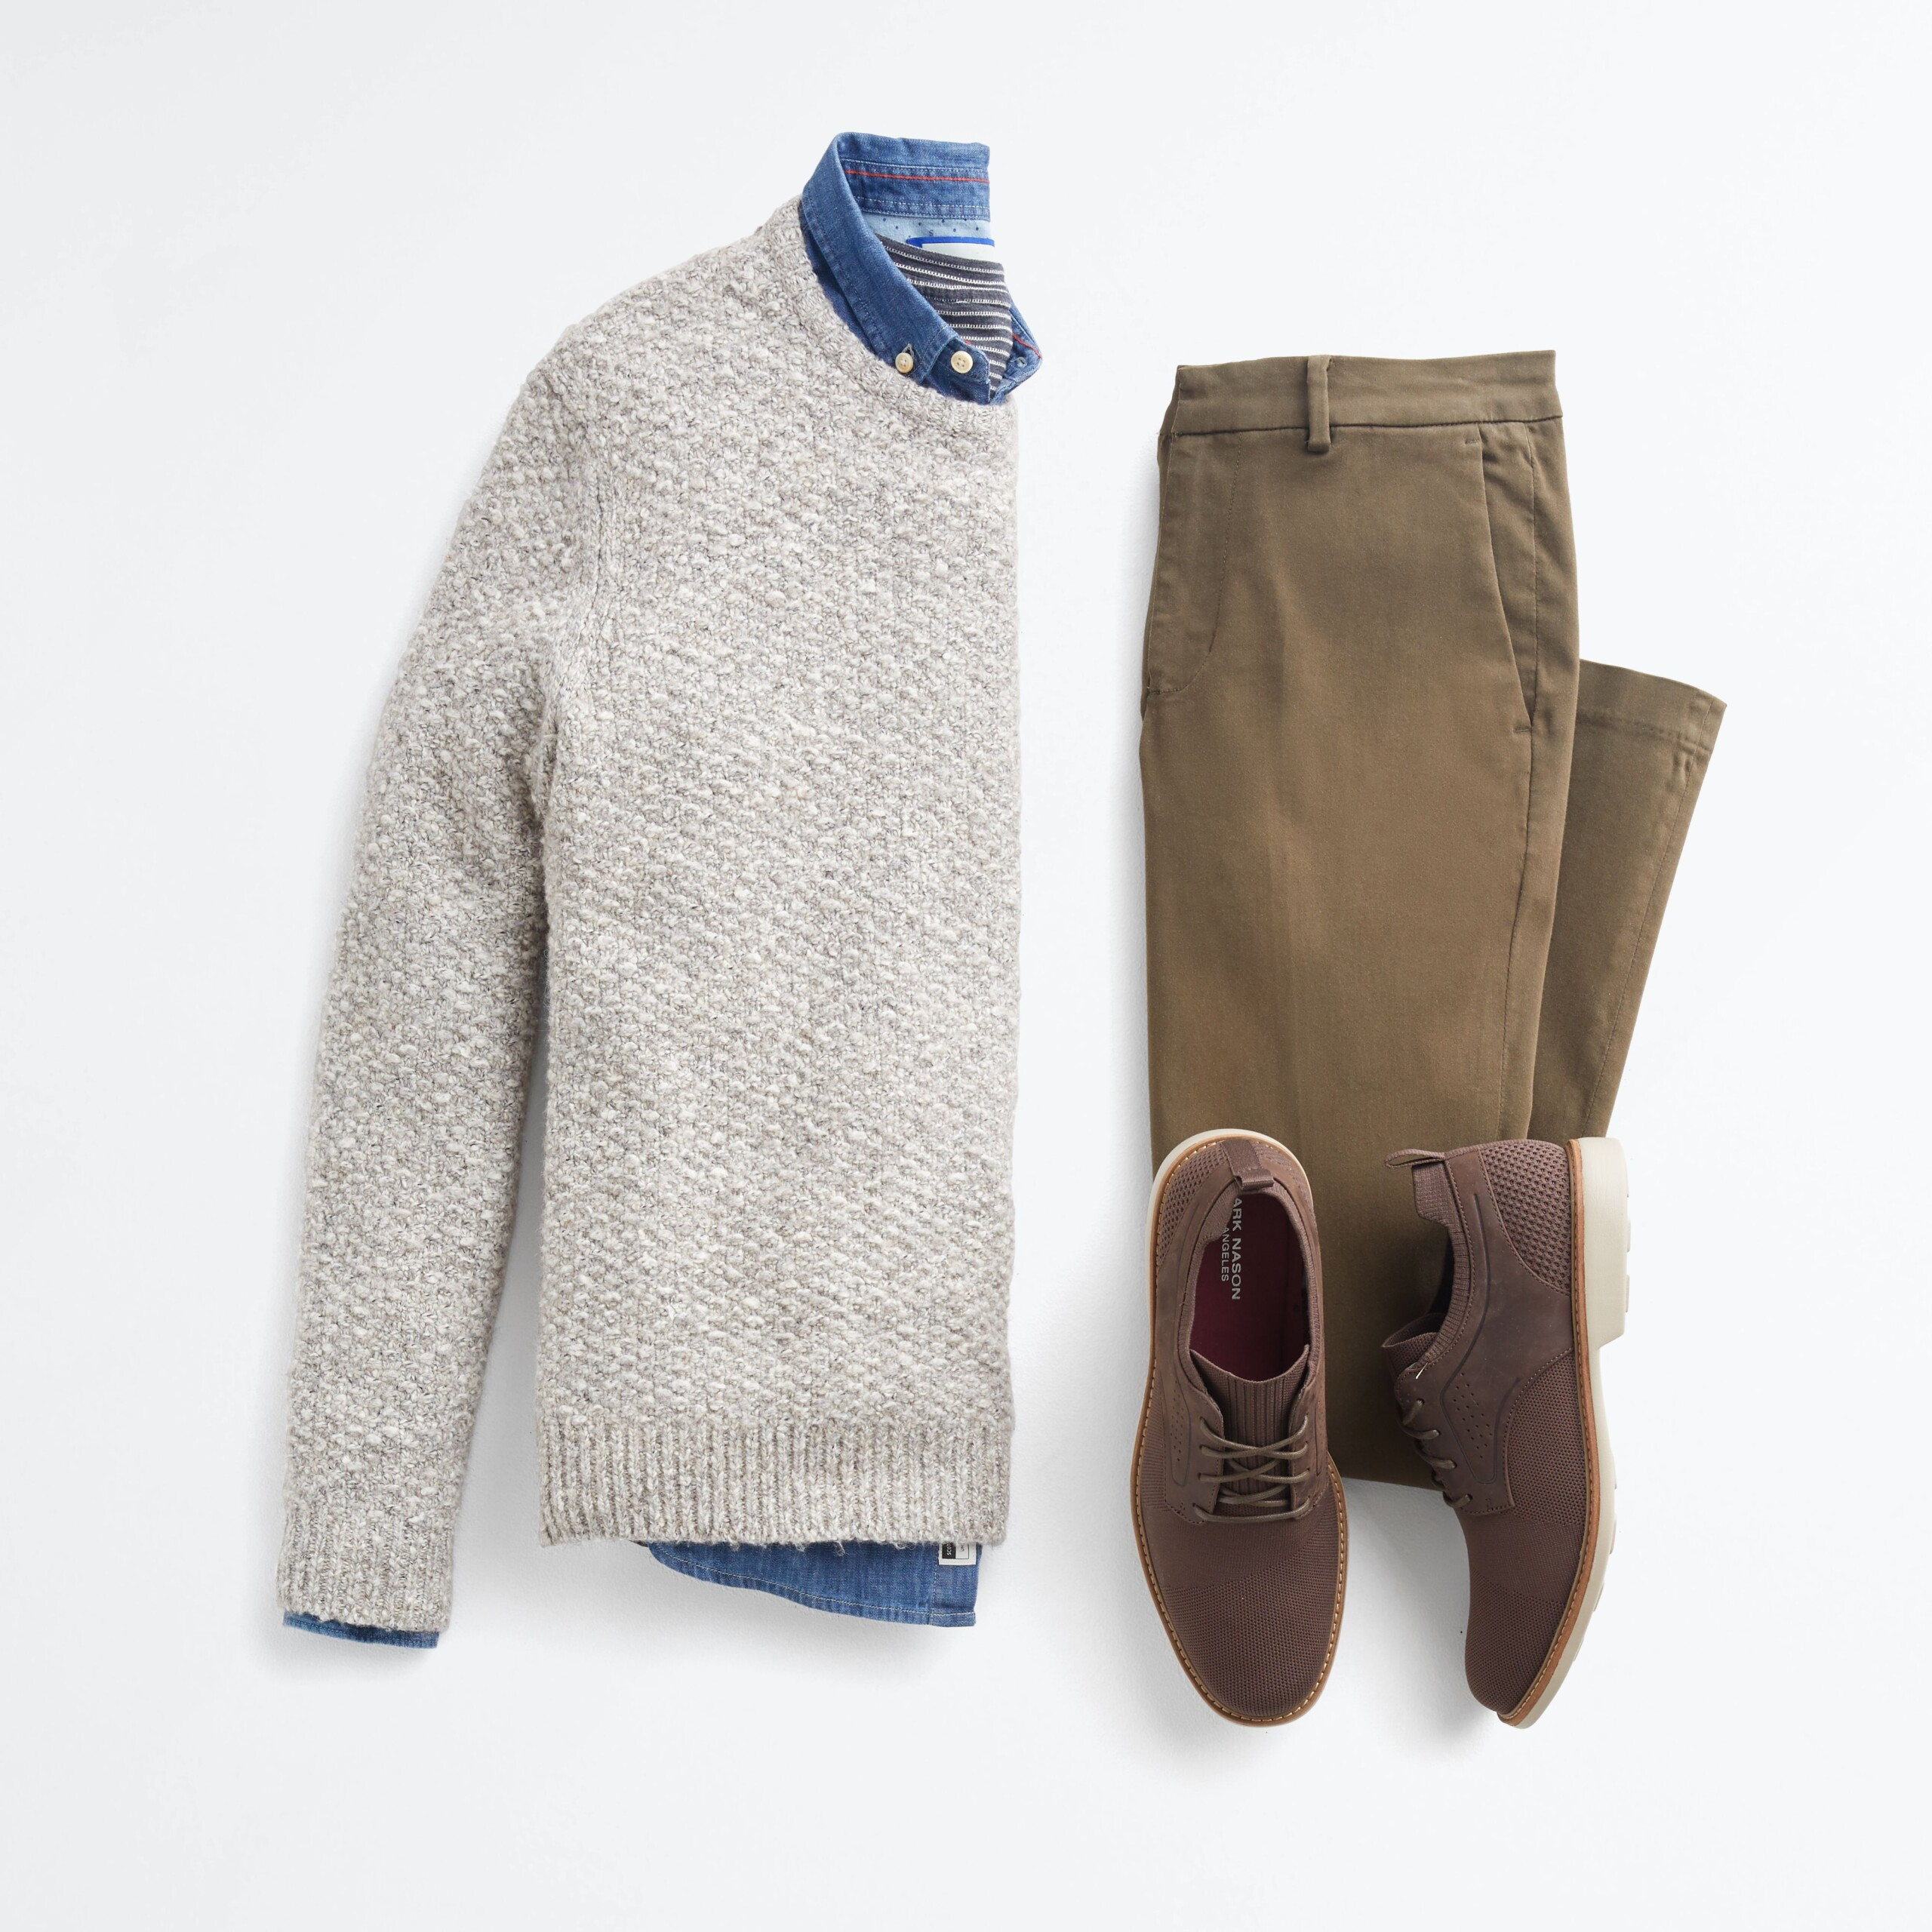 Stitch Fix Men's Outfit featuring blue chambray top, beige sweater and brown loafers.